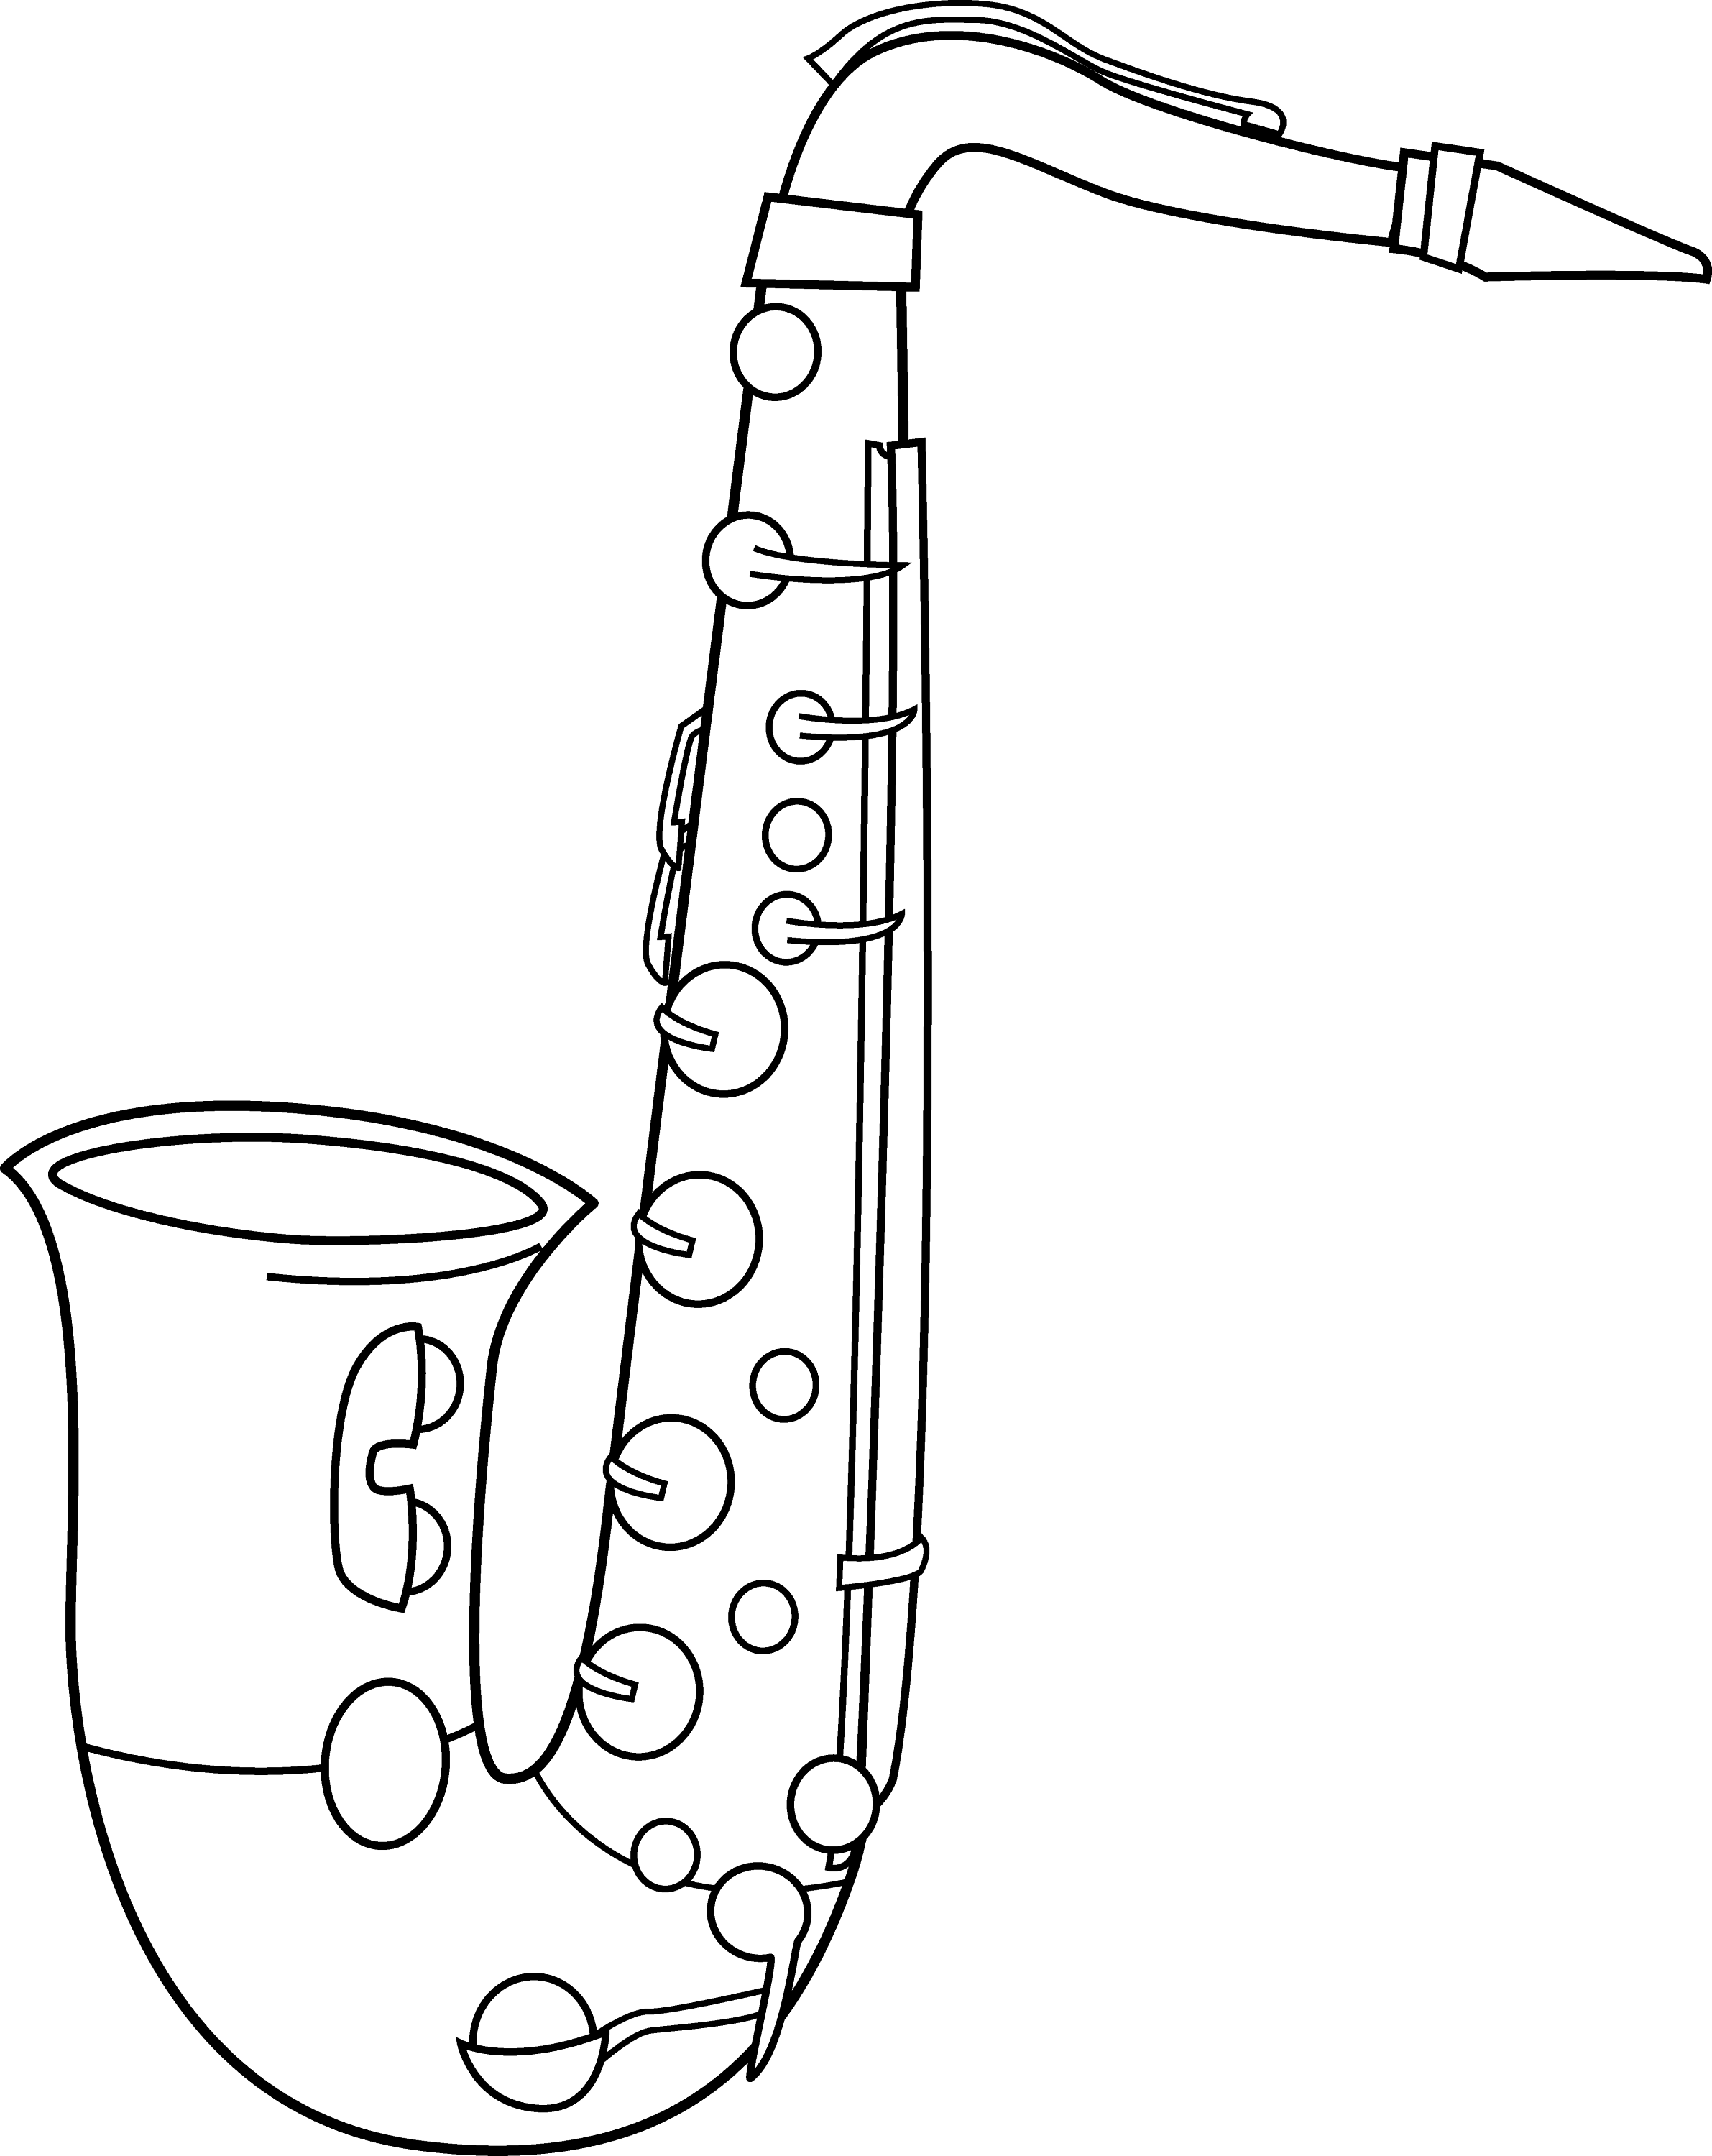 music instruments clipart black and white - photo #41